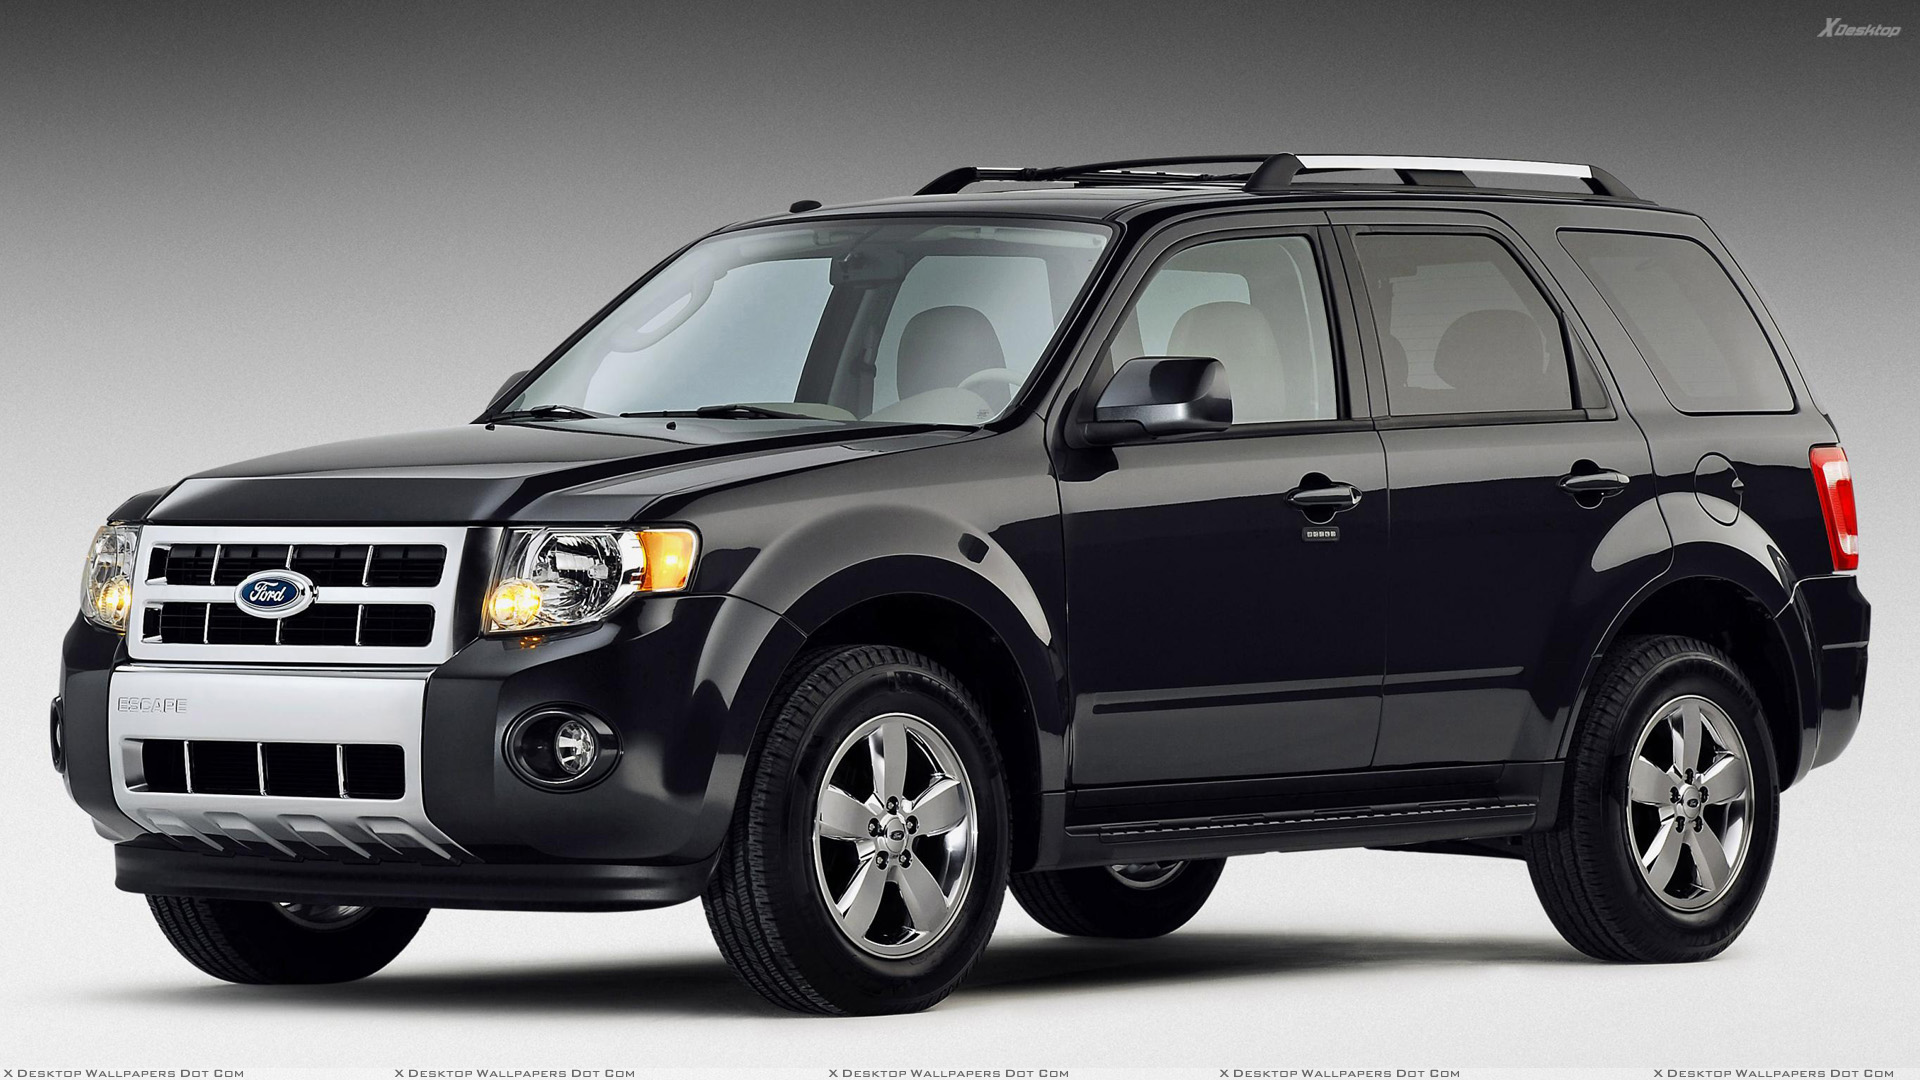 2009 ford escape side front in black wallpaper. Black Bedroom Furniture Sets. Home Design Ideas